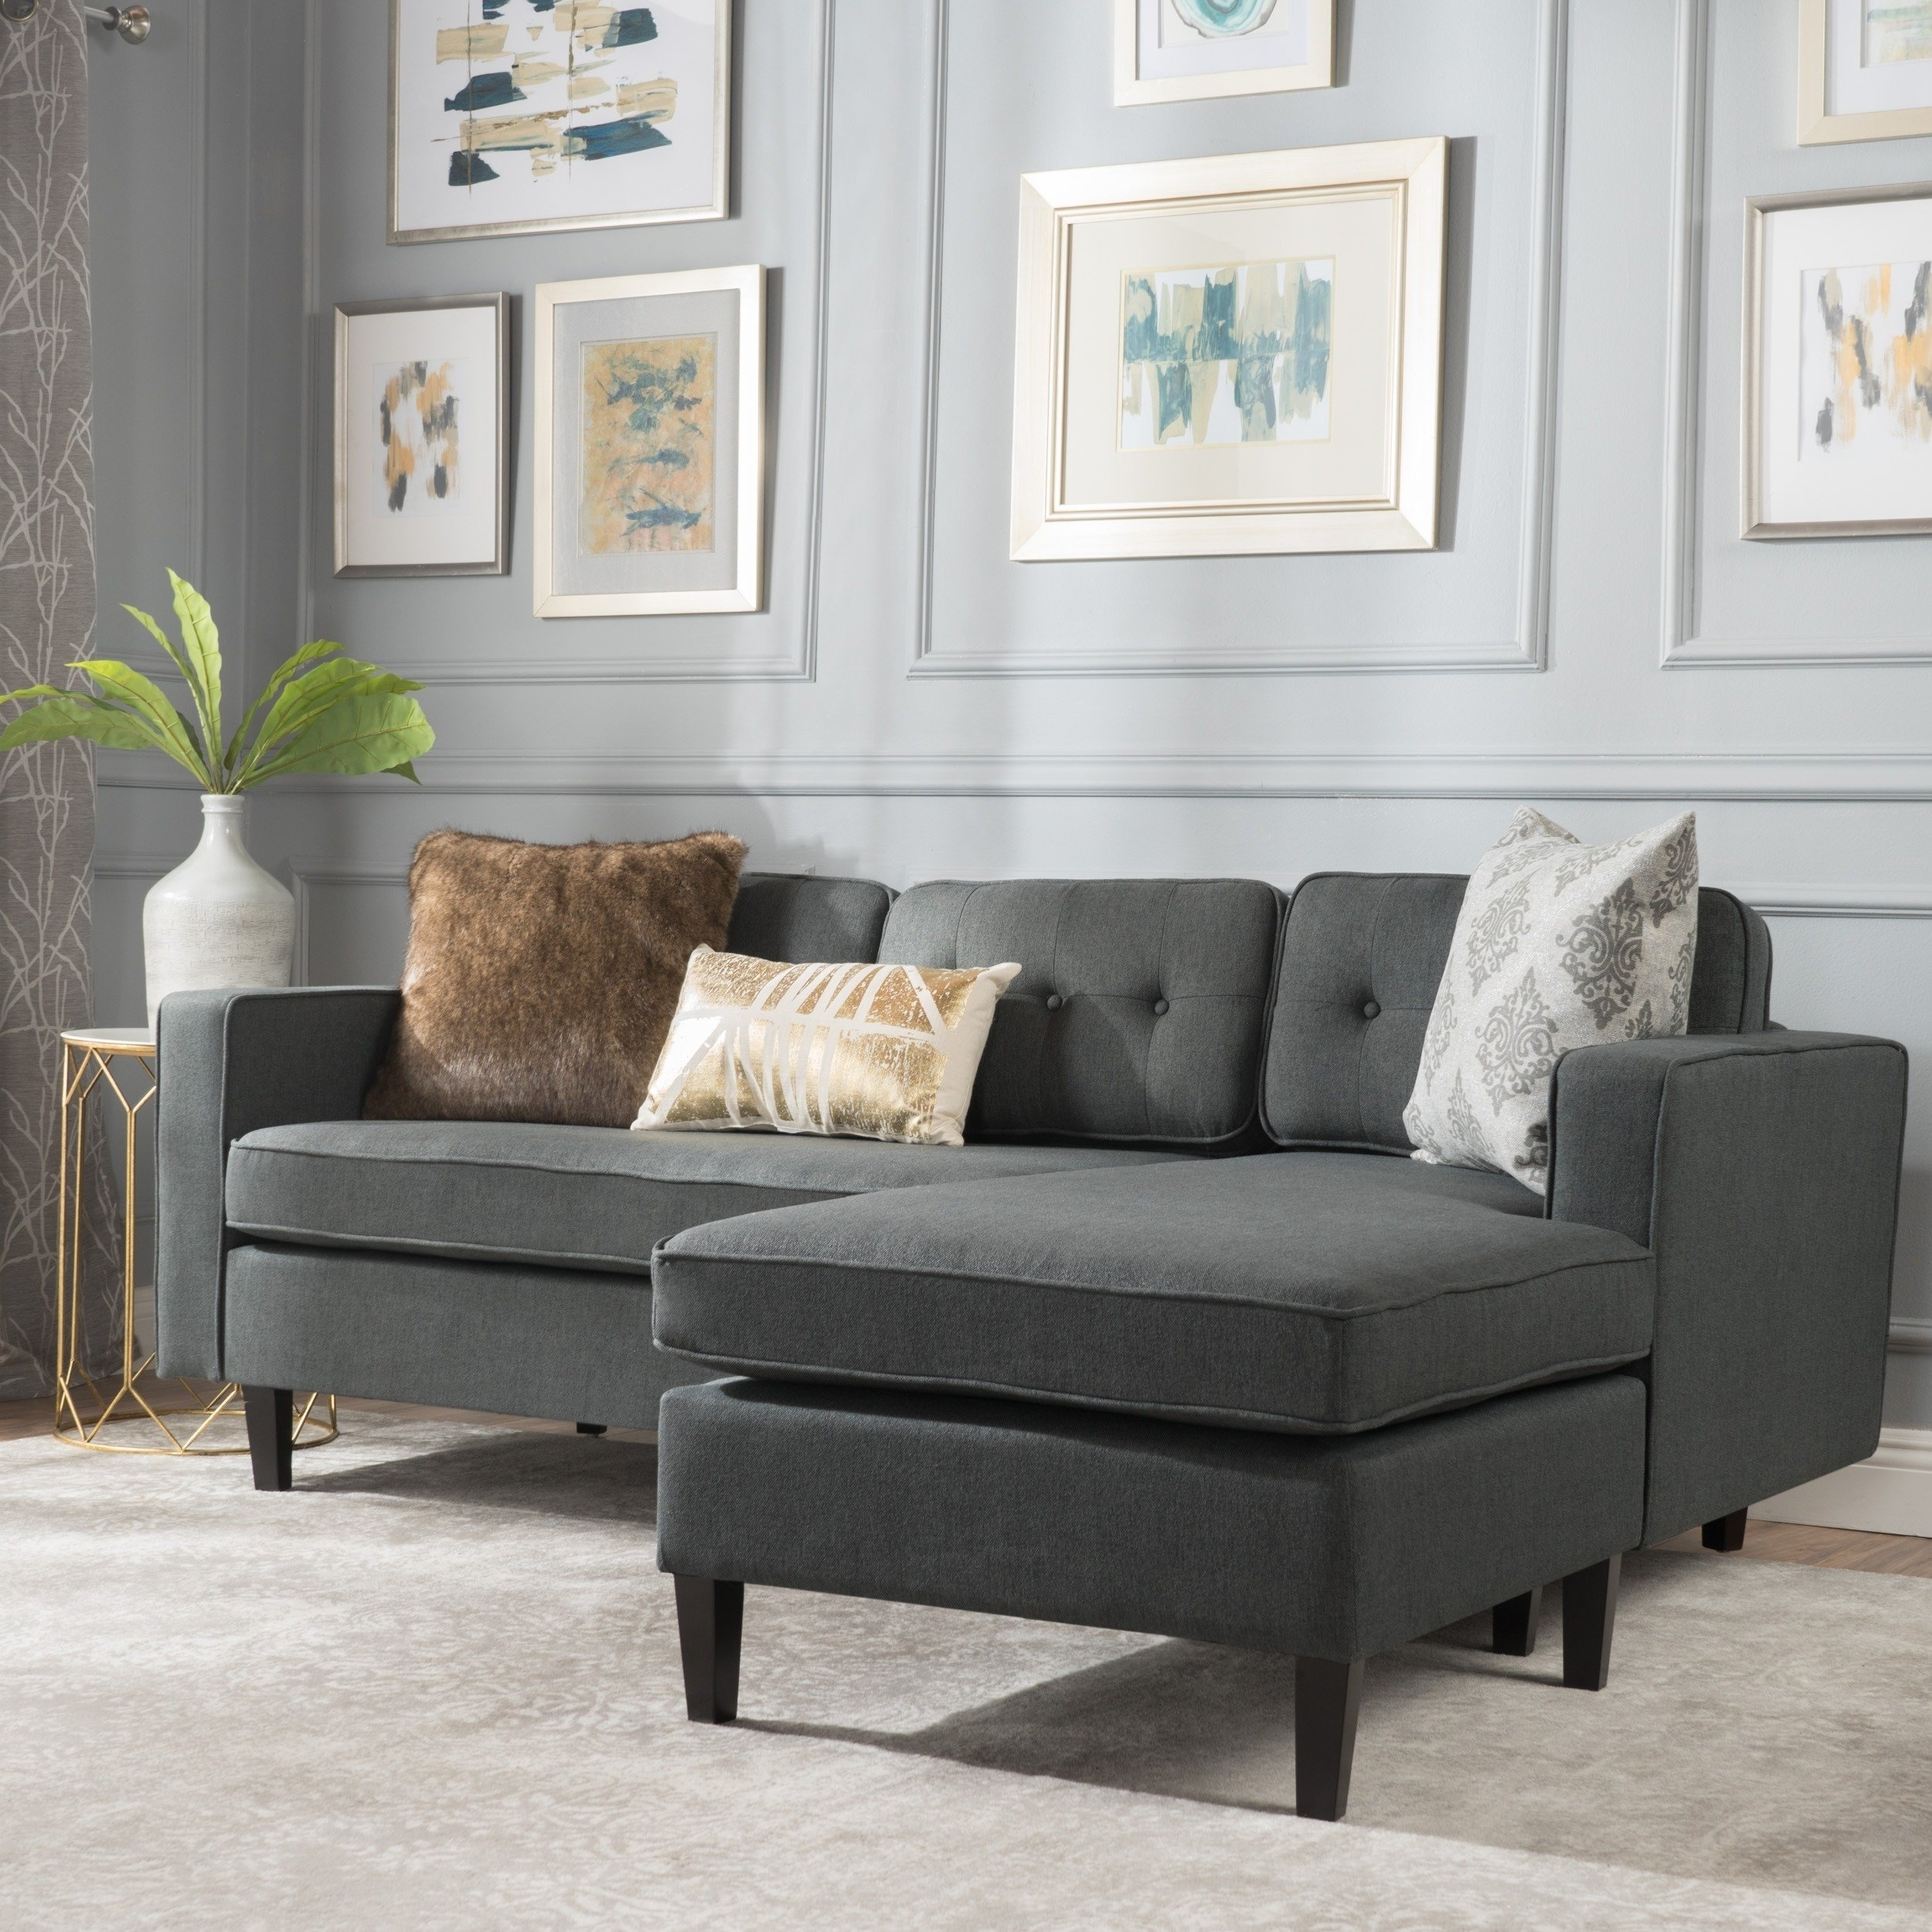 2 Piece Chaise Sectional Sofa | Baci Living Room regarding Tenny Dark Grey 2 Piece Right Facing Chaise Sectionals With 2 Headrest (Image 1 of 30)